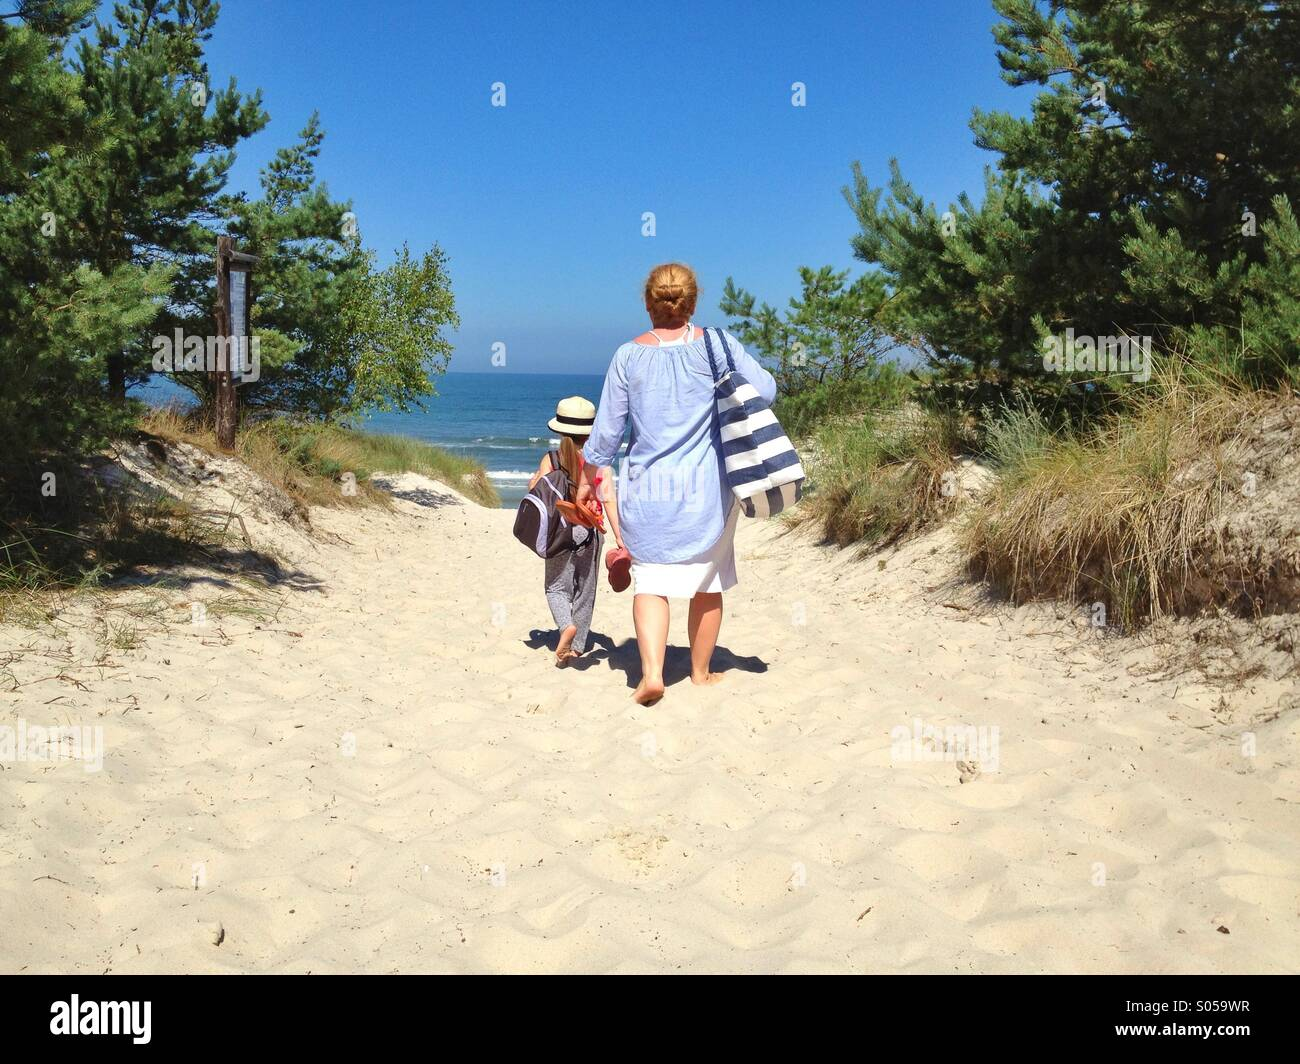 Going to the beach - Stock Image